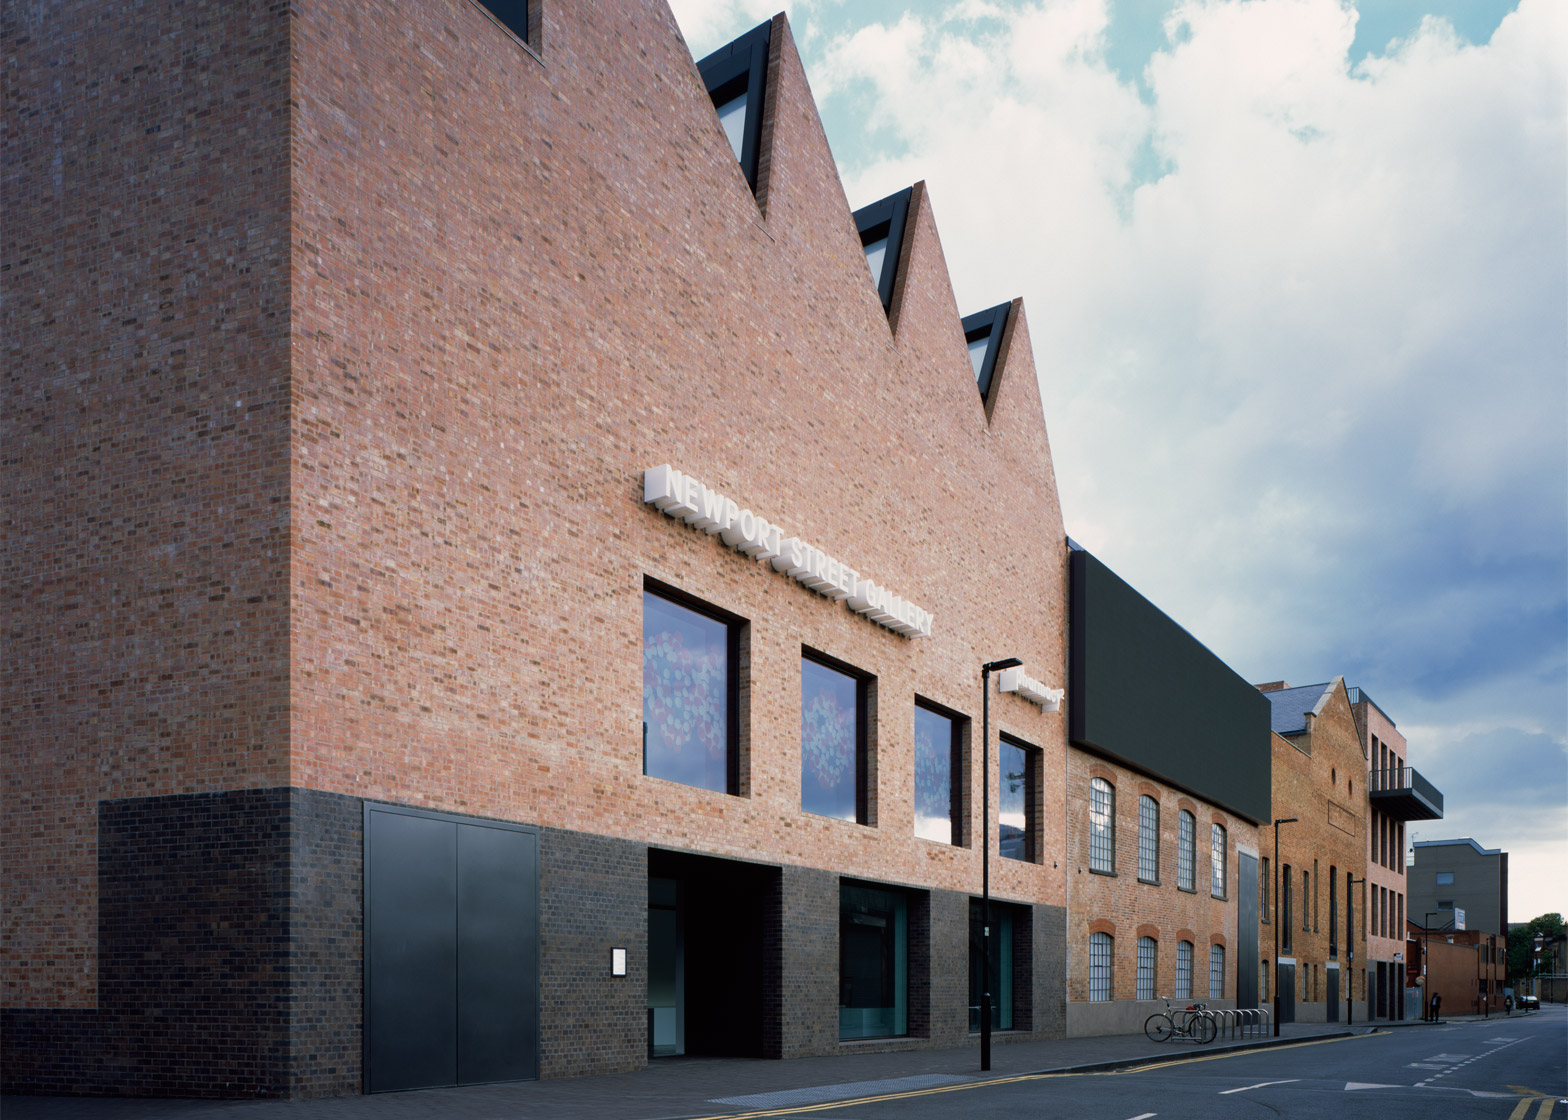 Newport Street Gallery by Caruso St John for Damien Hirst